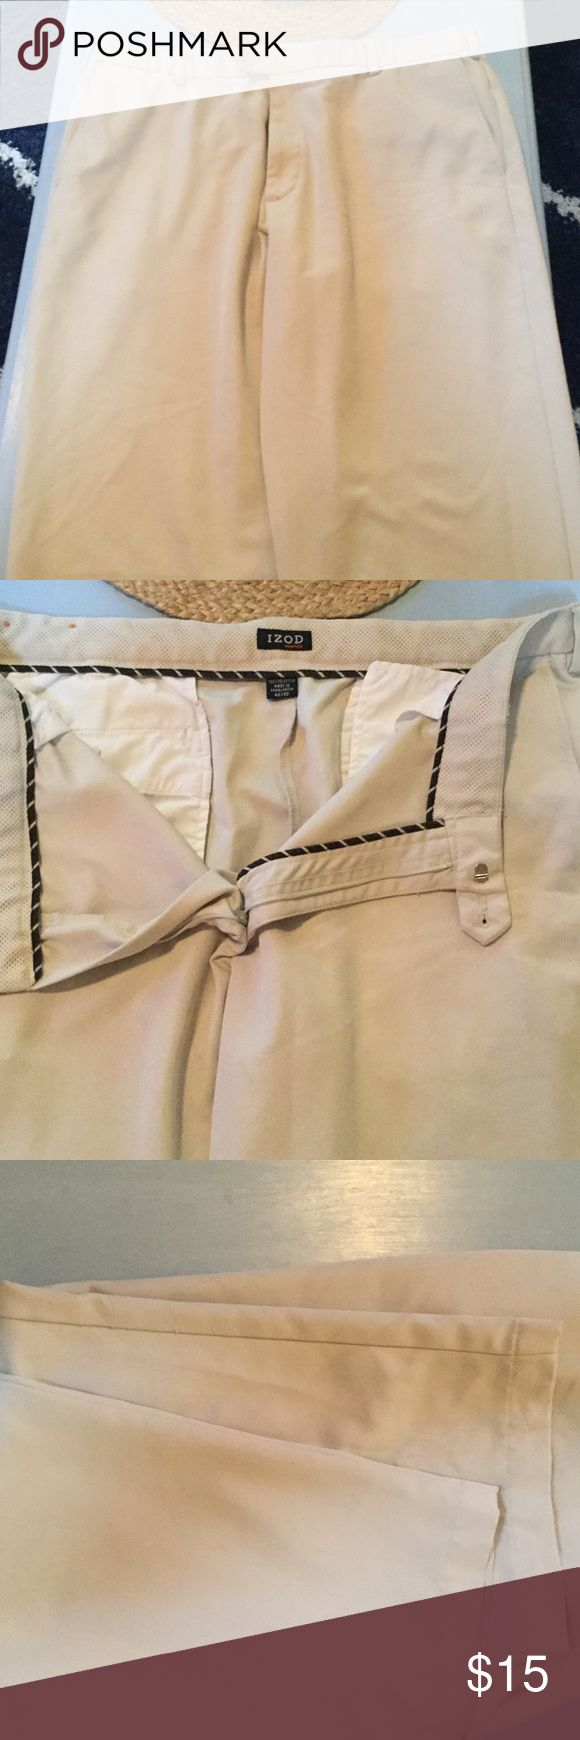 God shape lightweight Mens khakis Good shape lightweight cotton material khakis.  Small amount of peeling on one pant leg..otherwise great pair of pants. Pants Chinos & Khakis